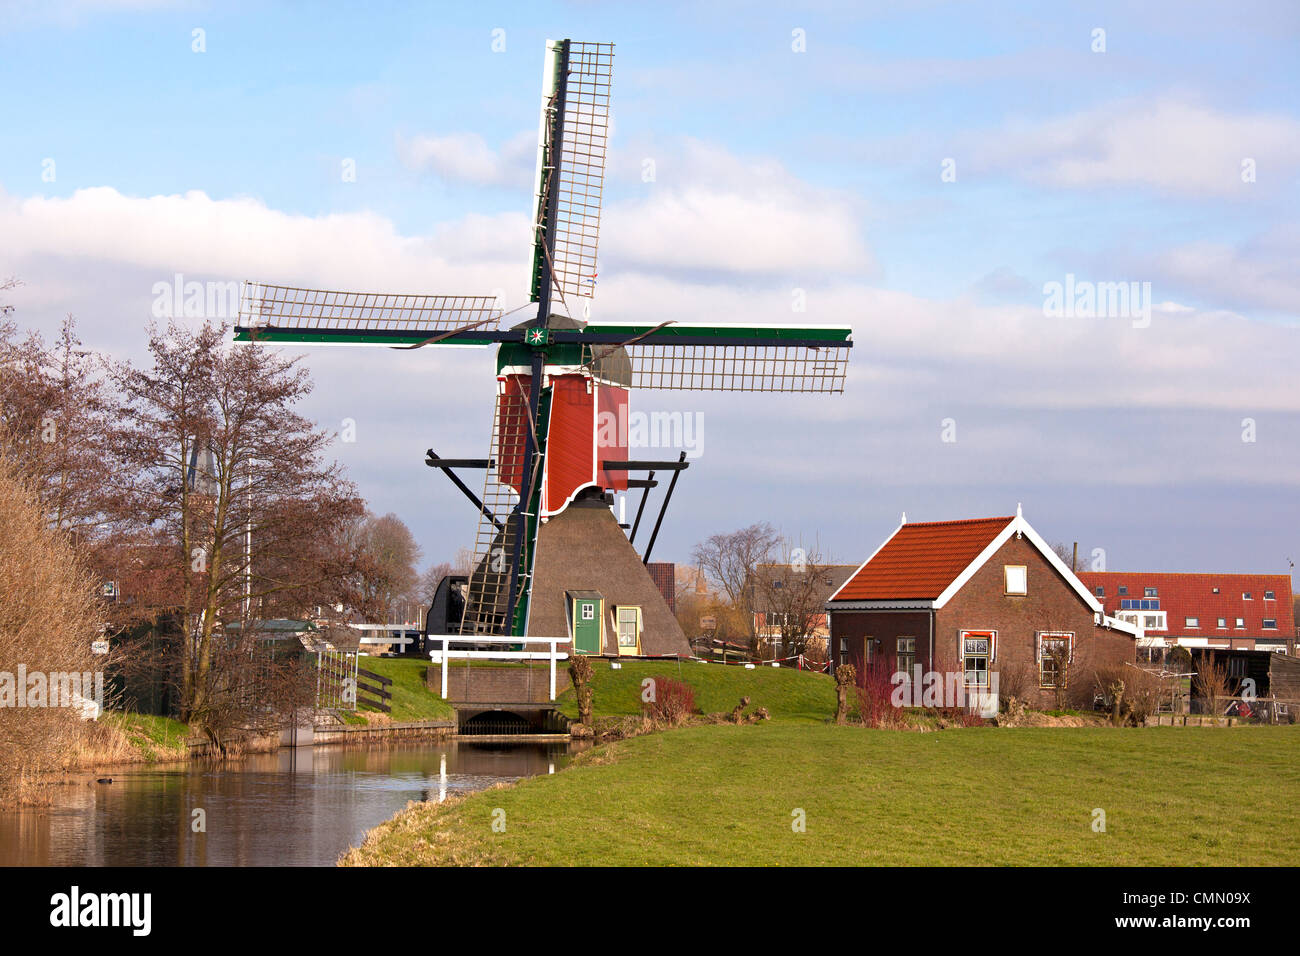 Wooden Windmill in Dutch landscape - Stock Image